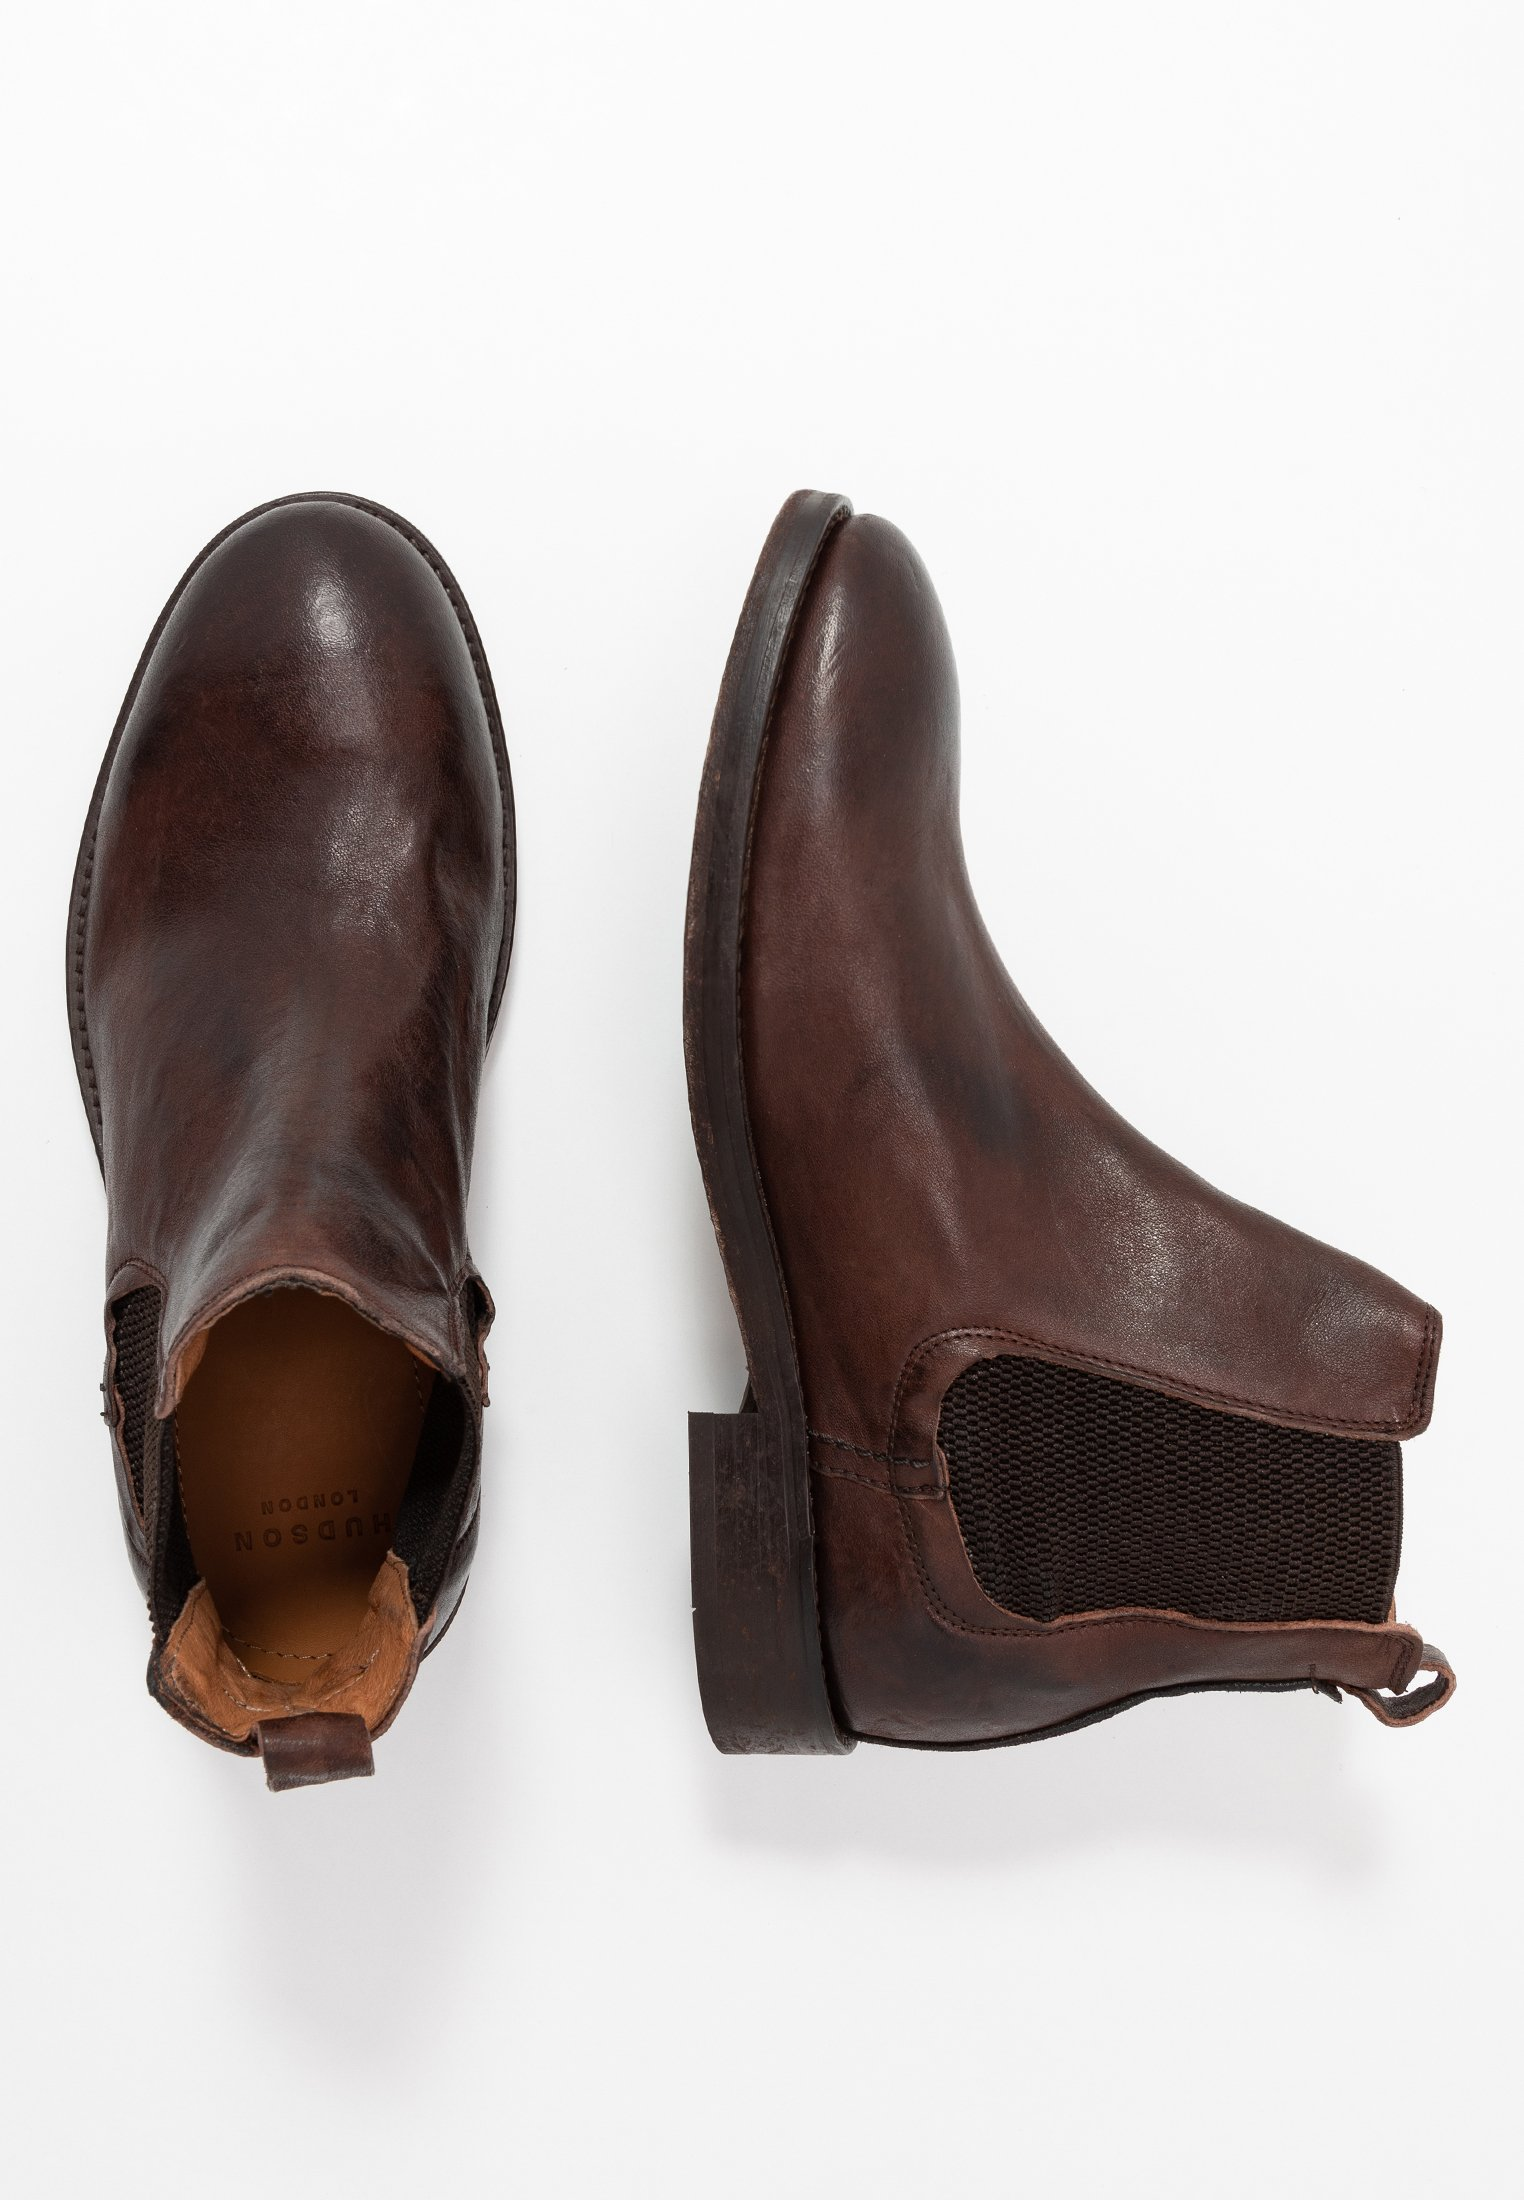 Hudson London Wistman - Classic Ankle Boots Brown